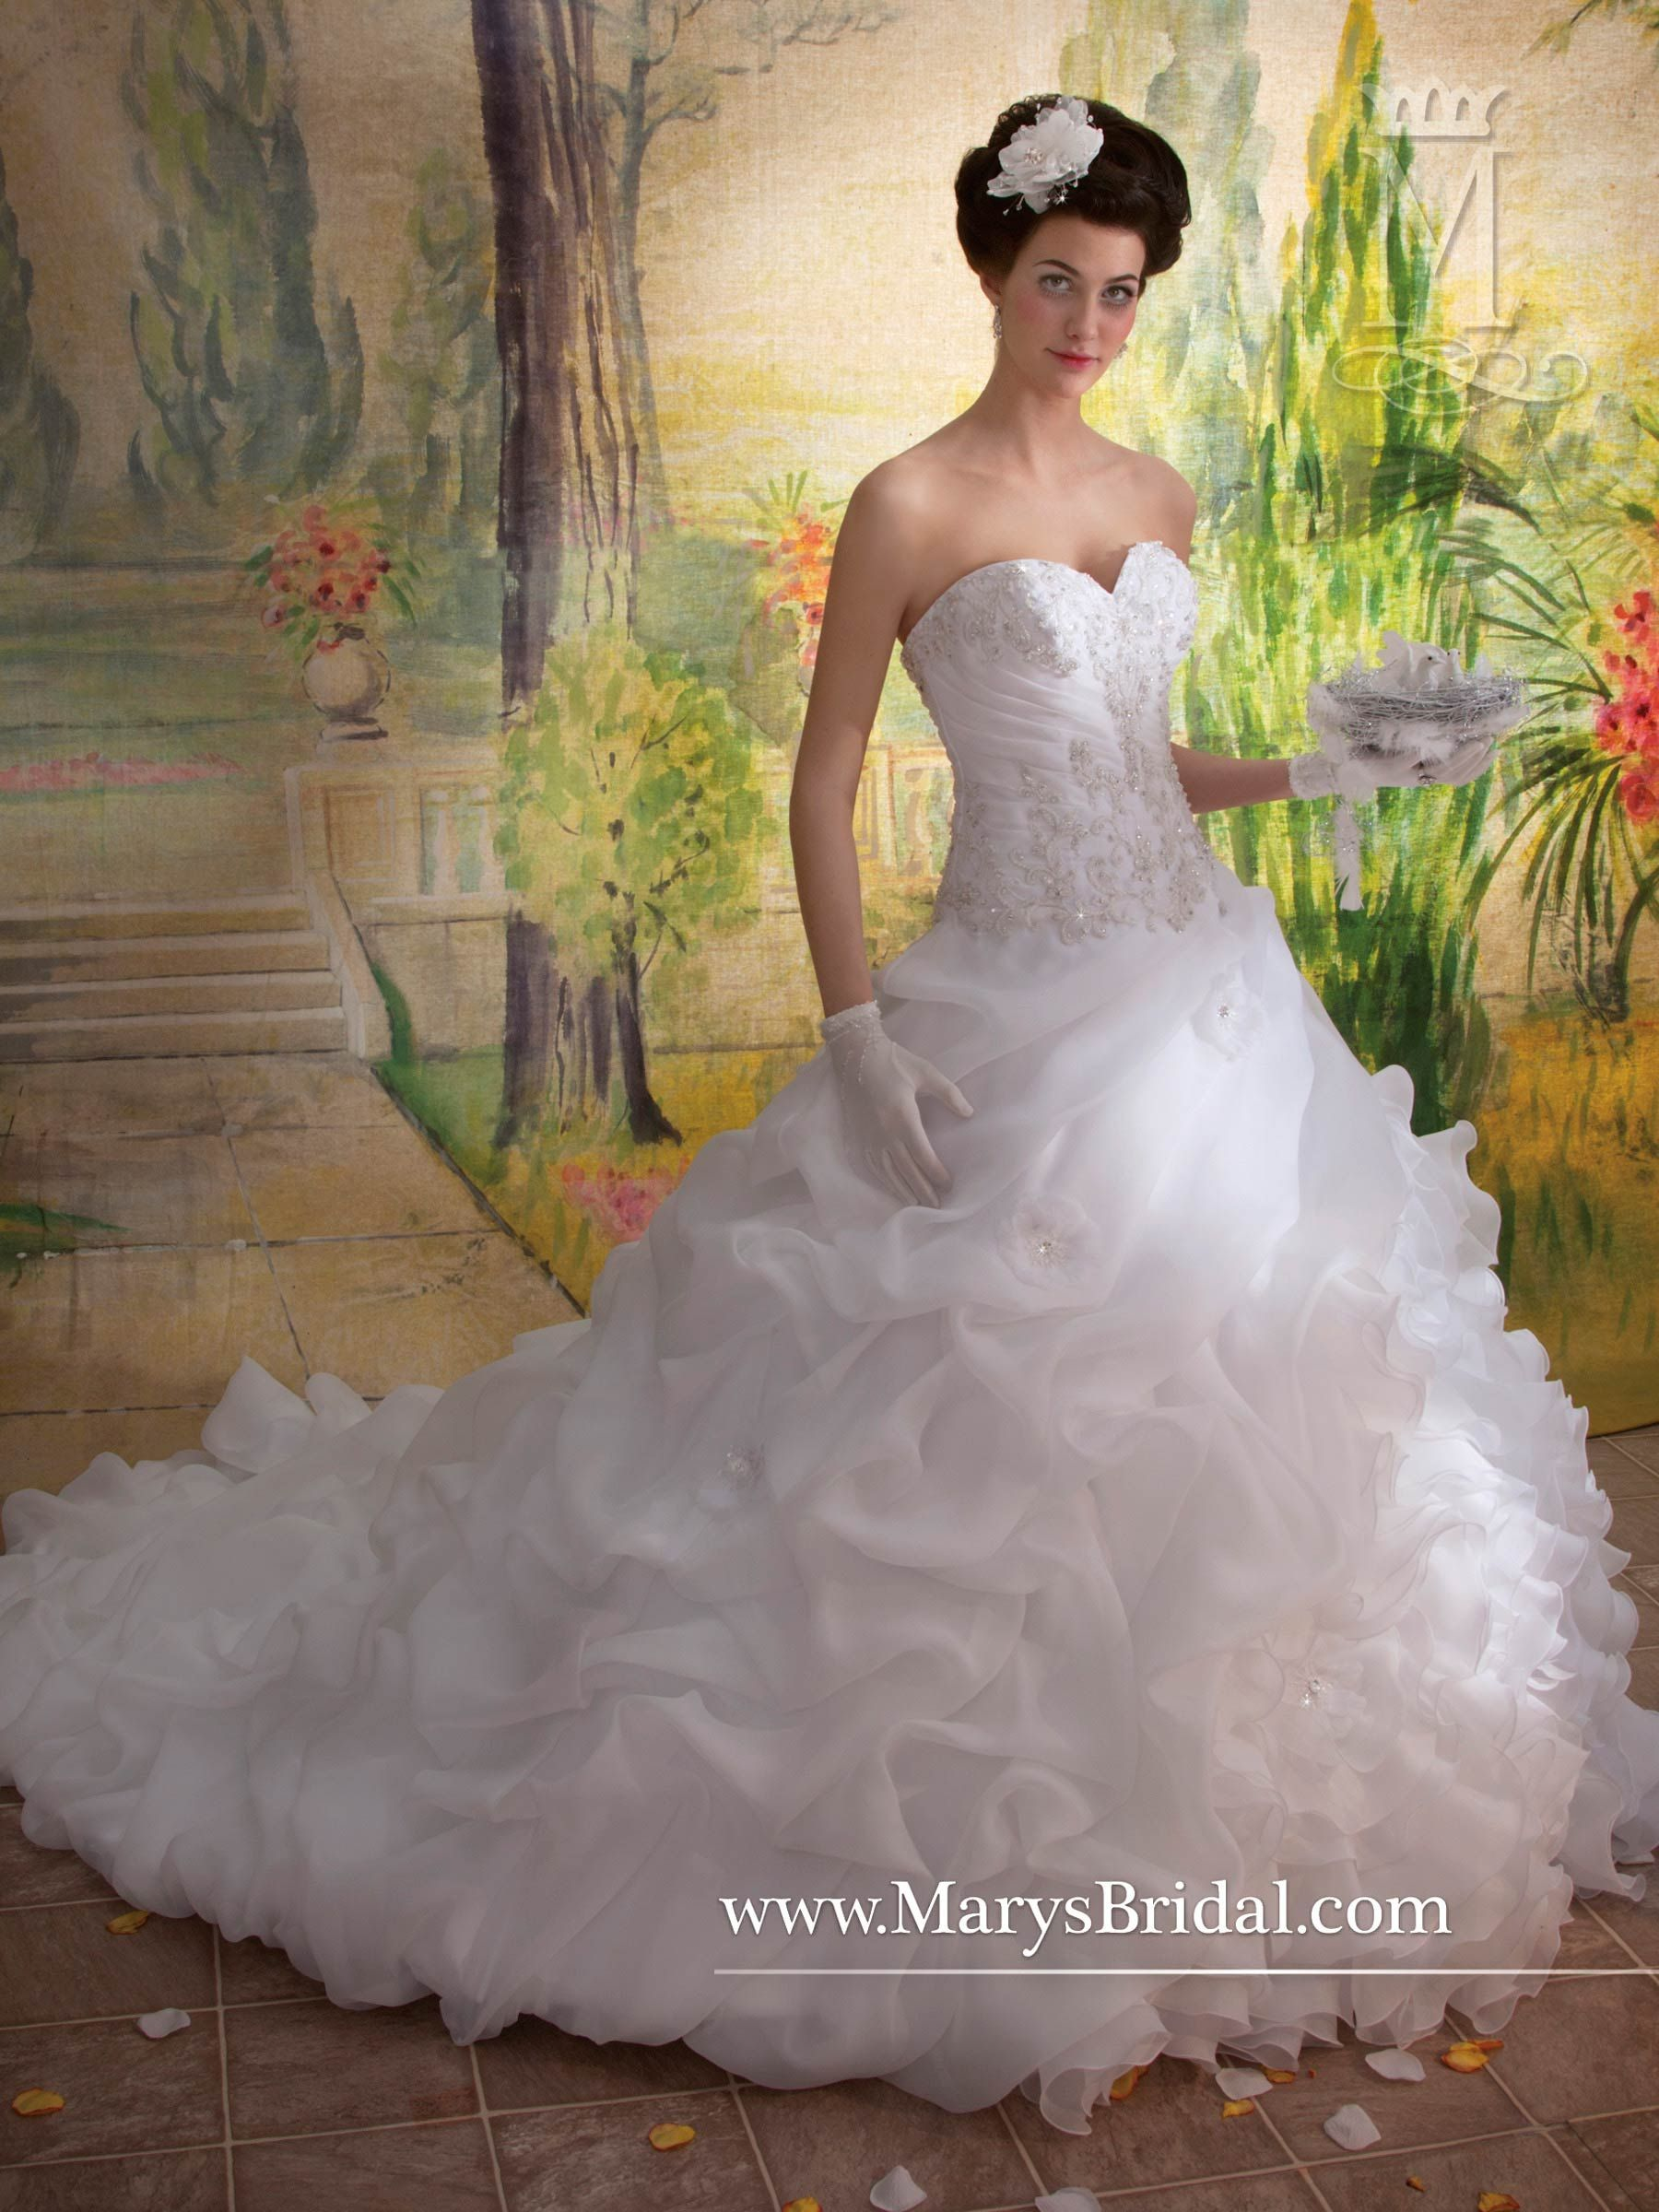 Pin by rachel fromerth on wedding ideas pinterest wedding dress